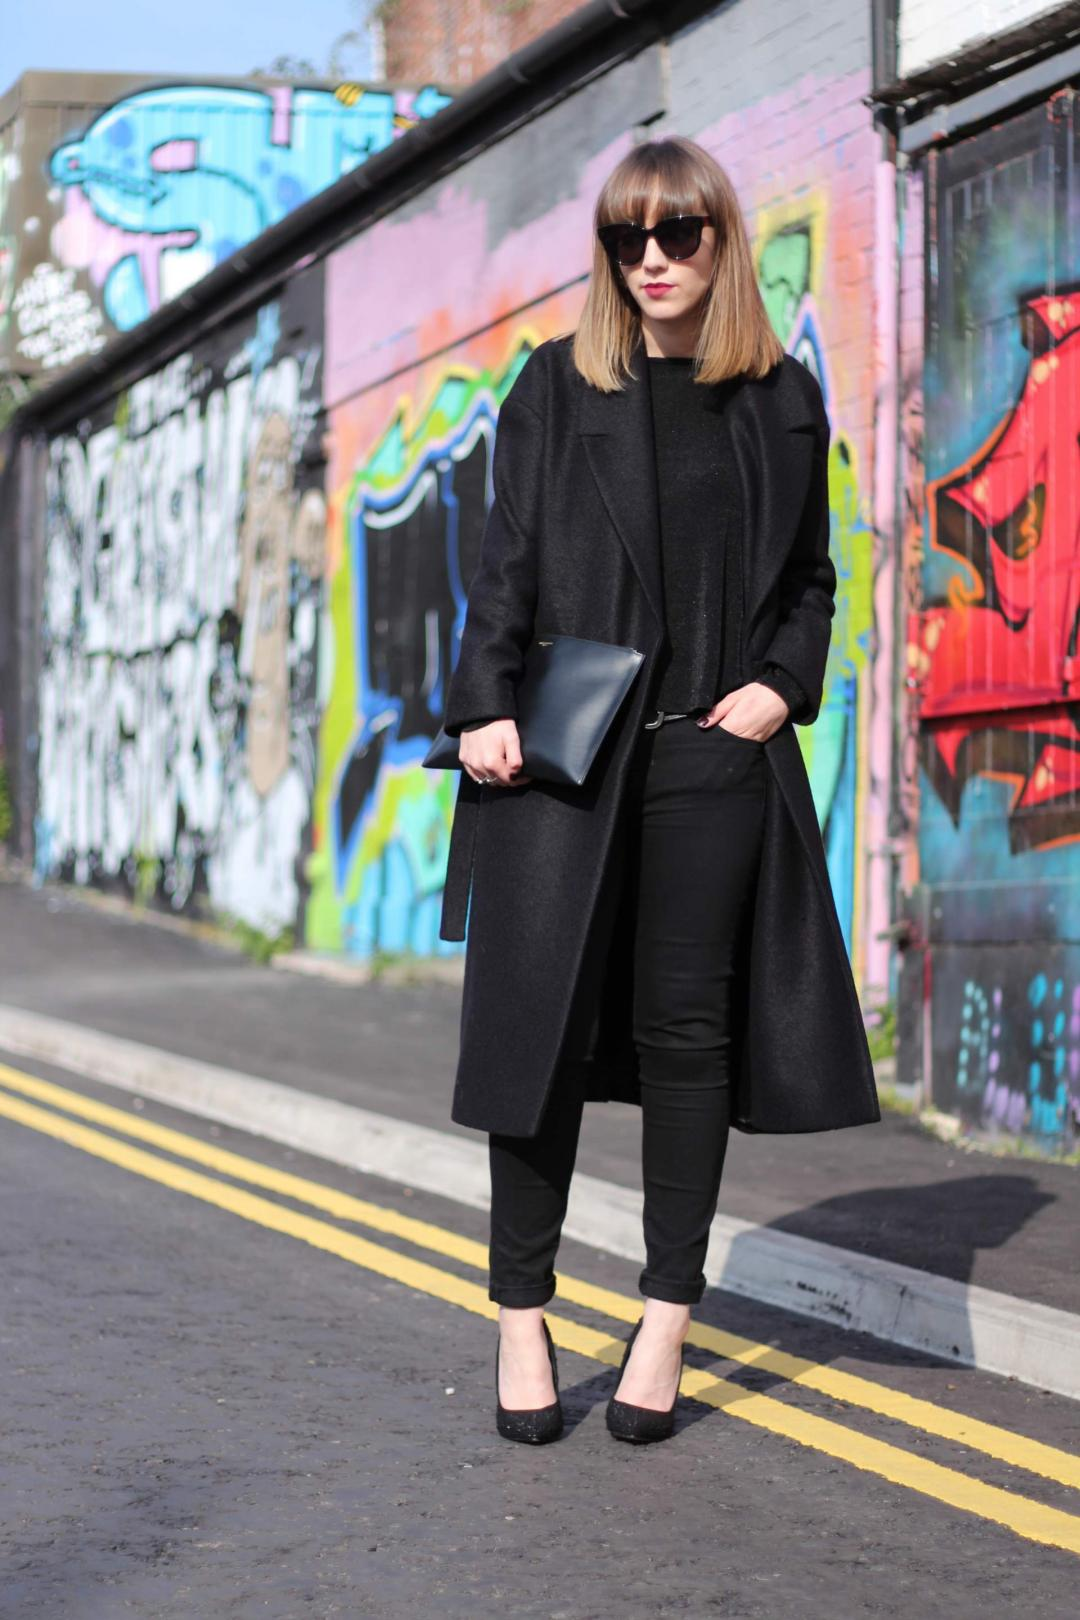 kurt geiger gemini heels cos oversized wool coat saint laurent clutch